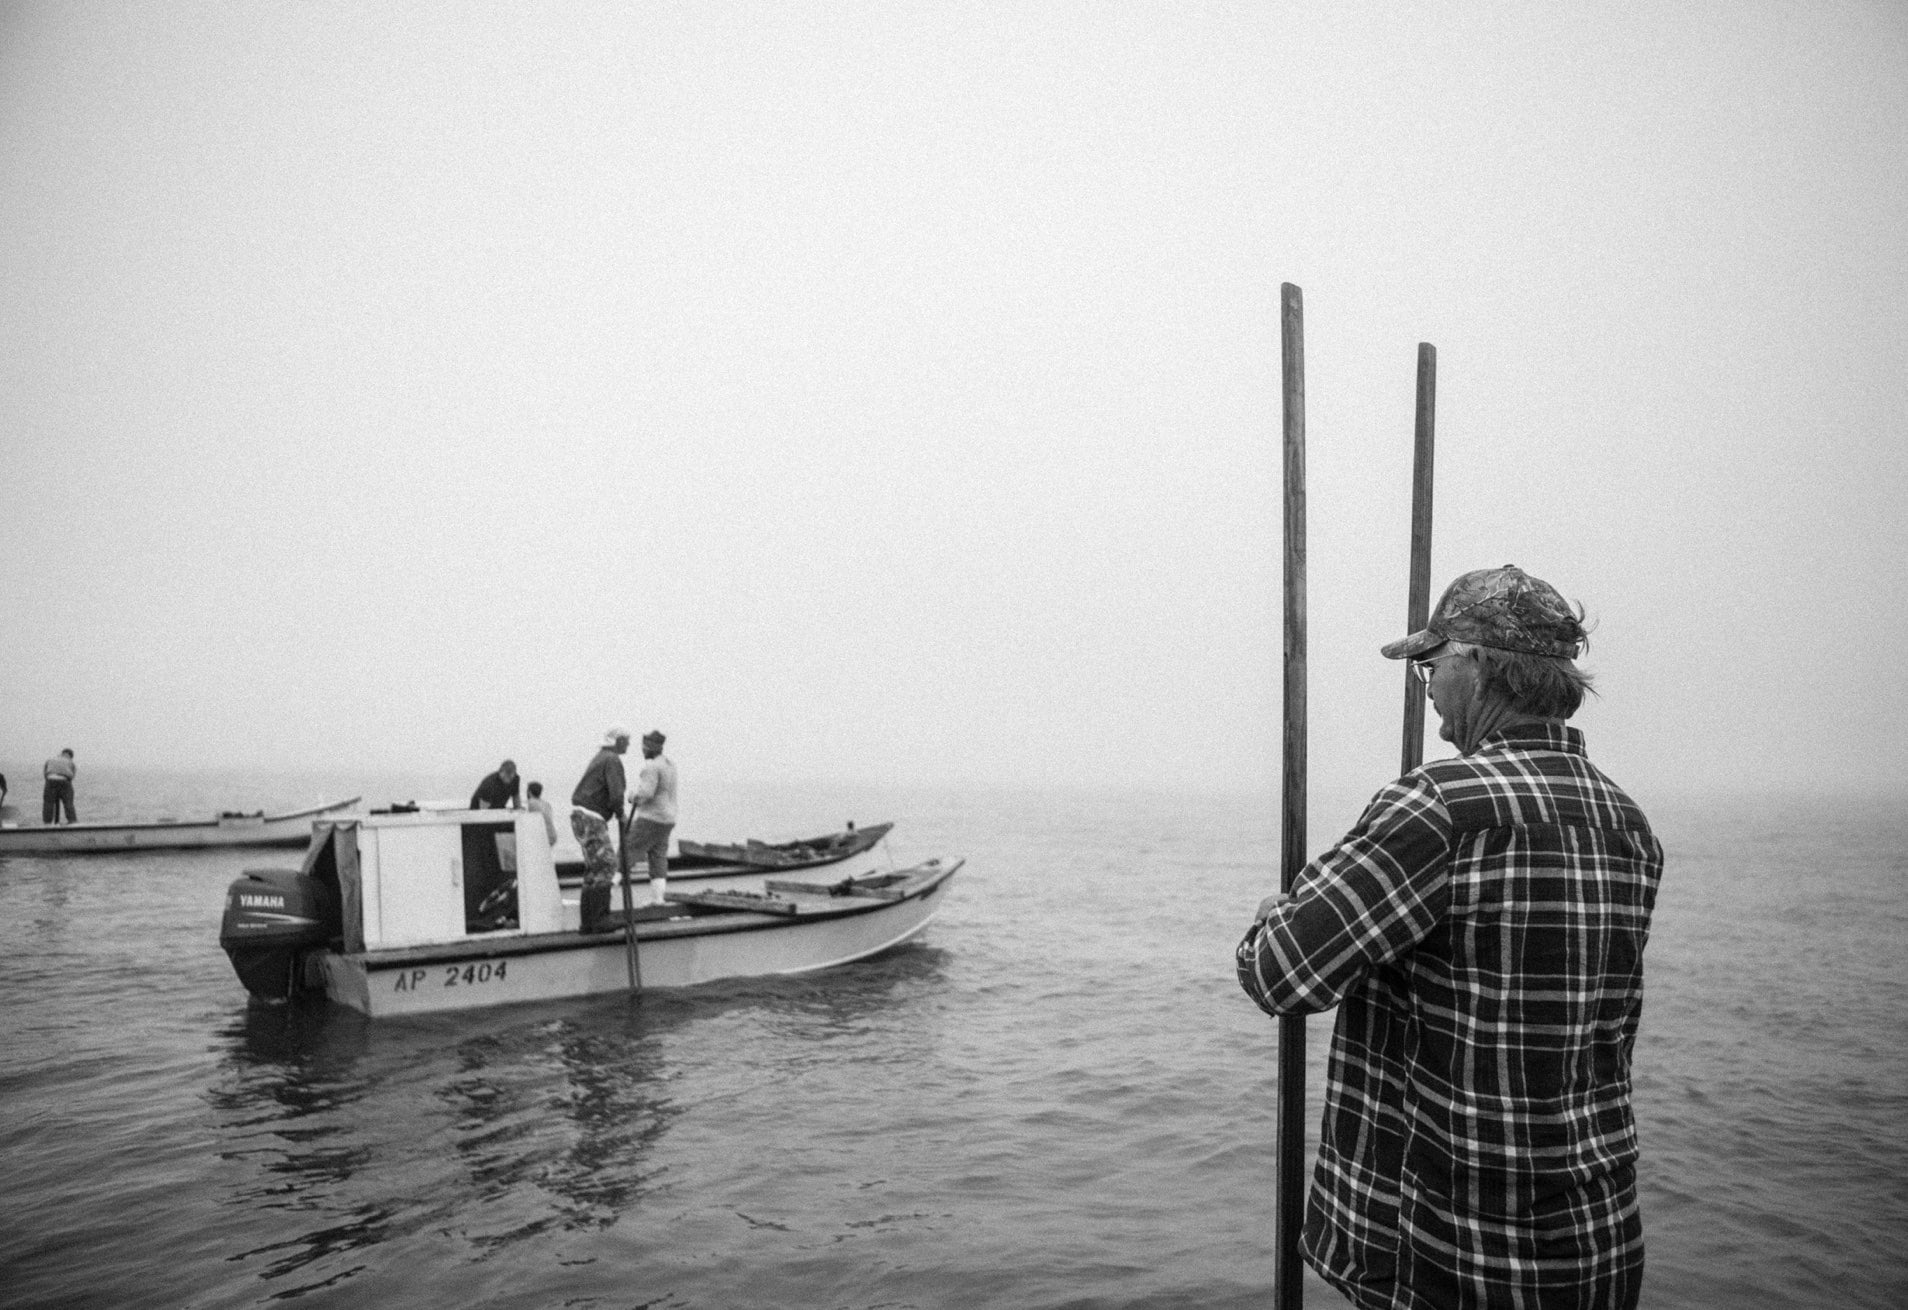 Oystermen of Apalachicola River